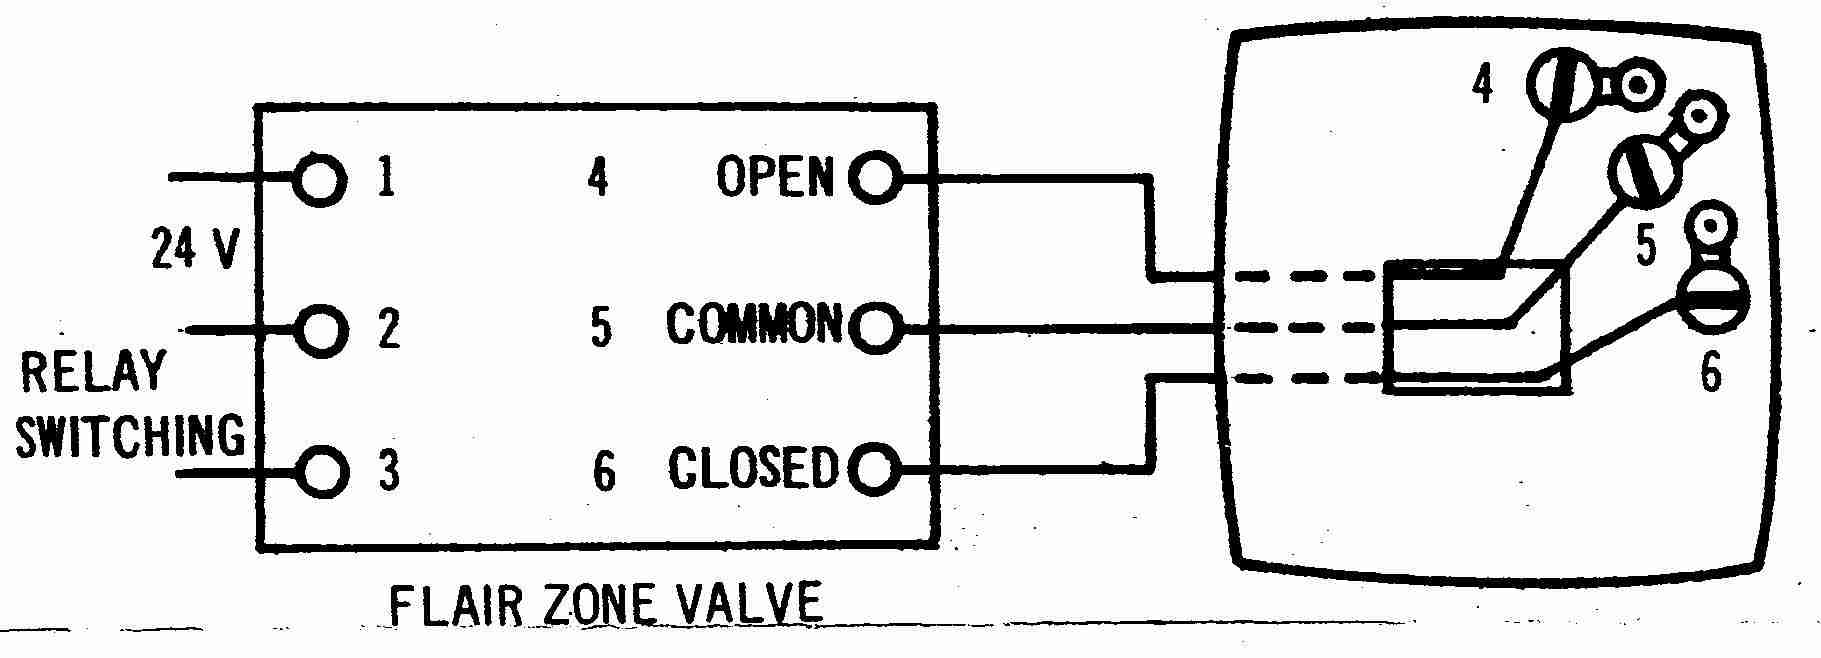 Flair3w_001_DJFc2 zone valve wiring installation & instructions guide to heating zone valve wiring diagram at bayanpartner.co